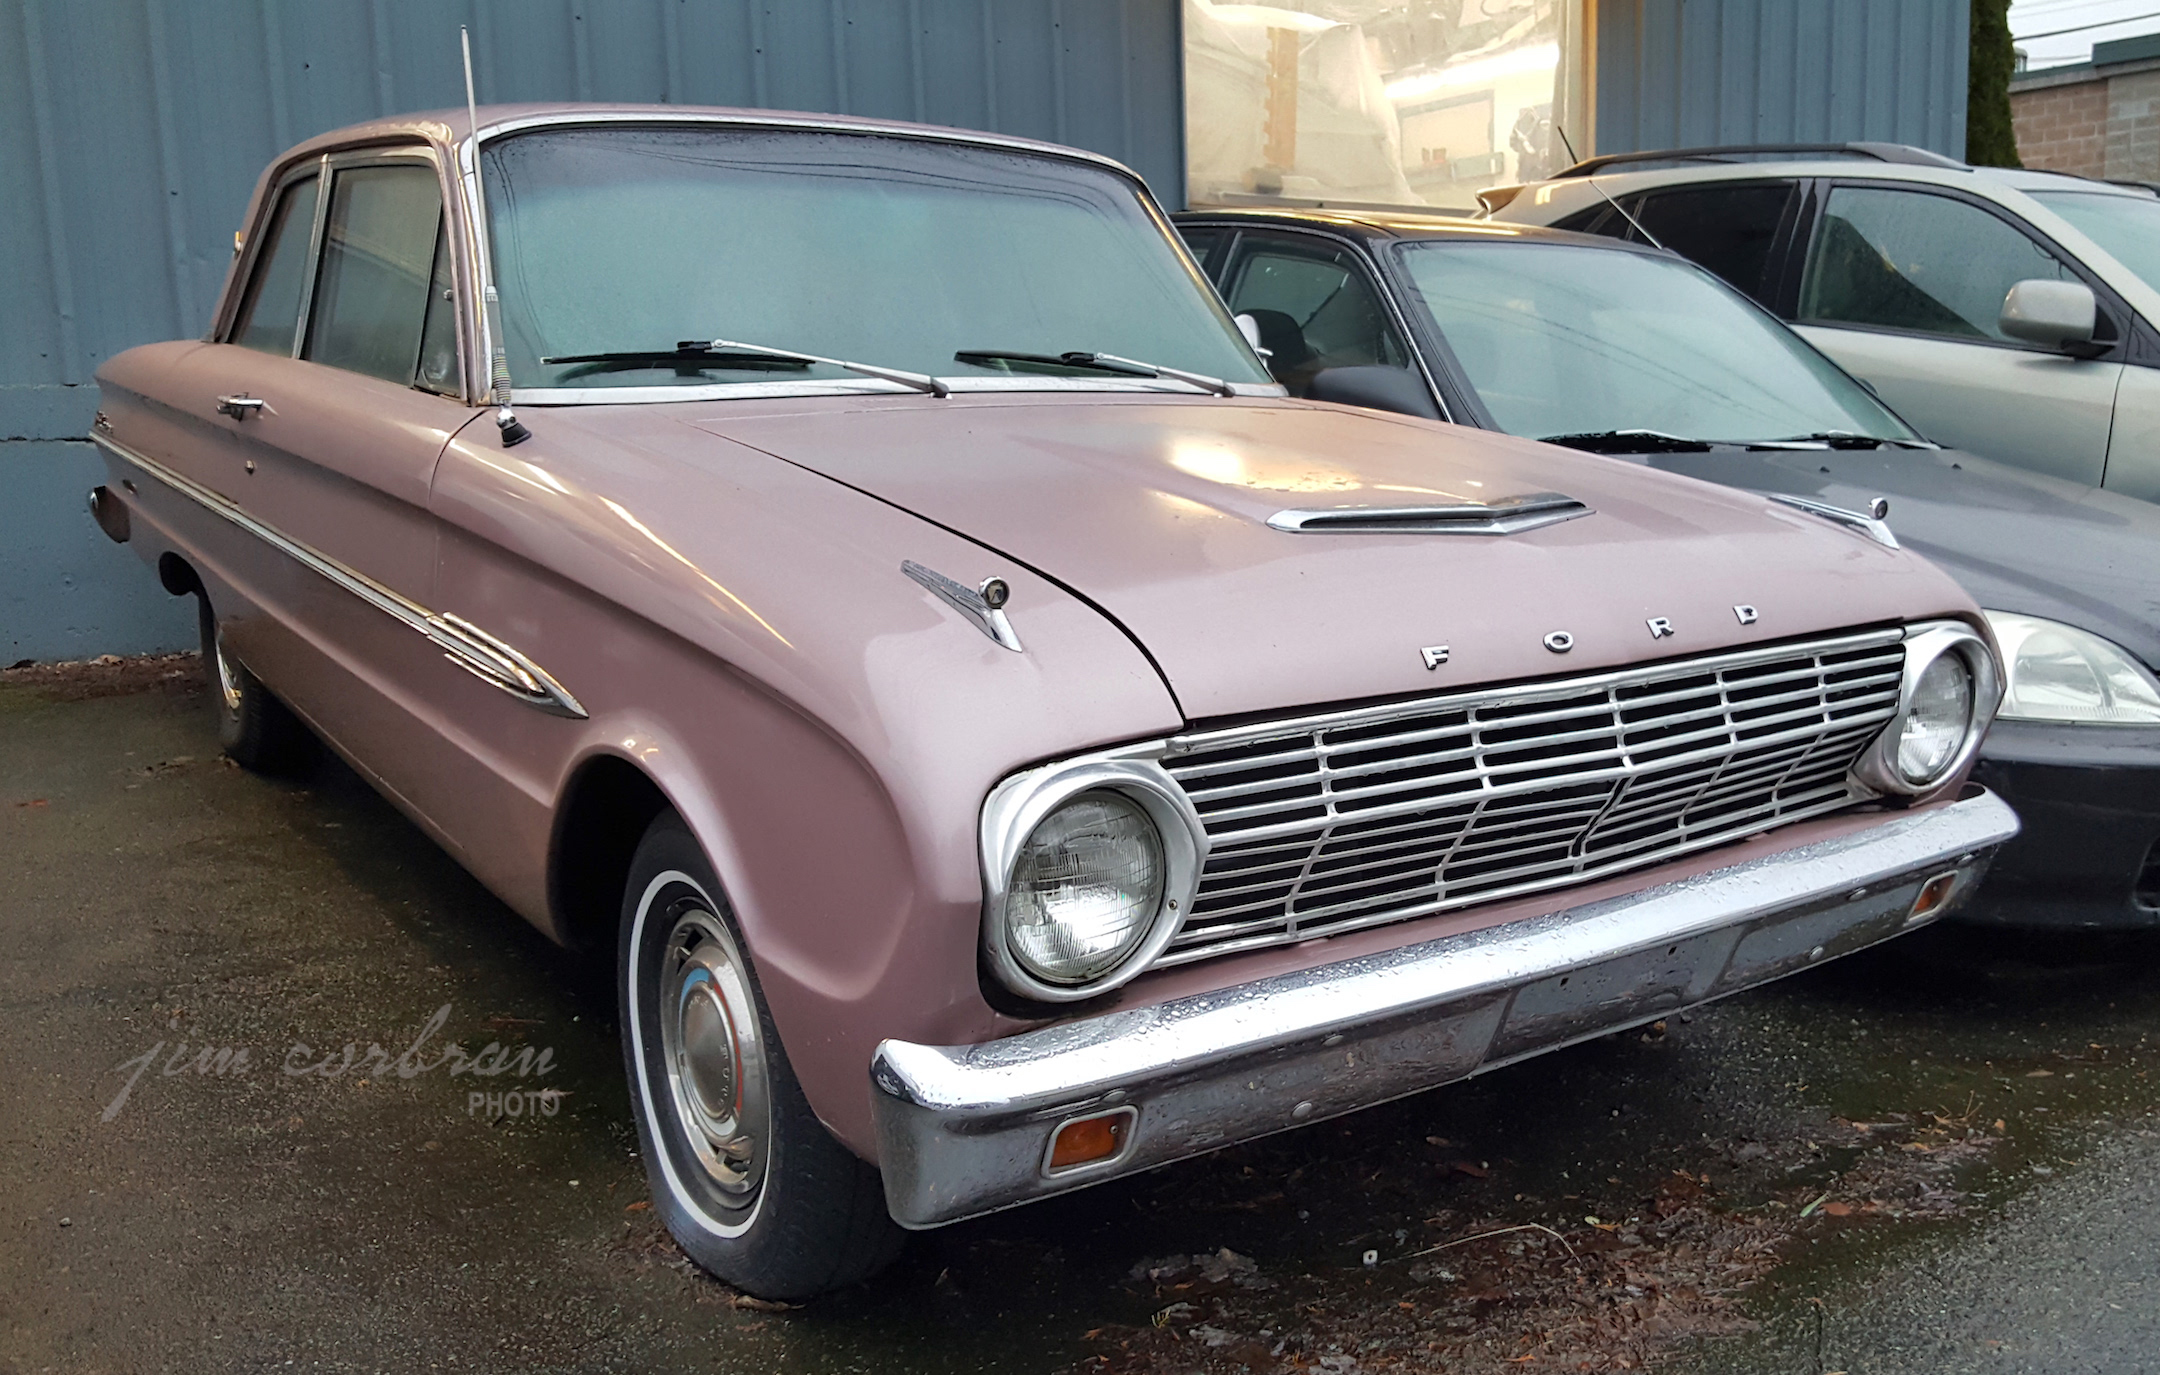 RealRides of WNY (on the road) - 1963 Ford Falcon Futura